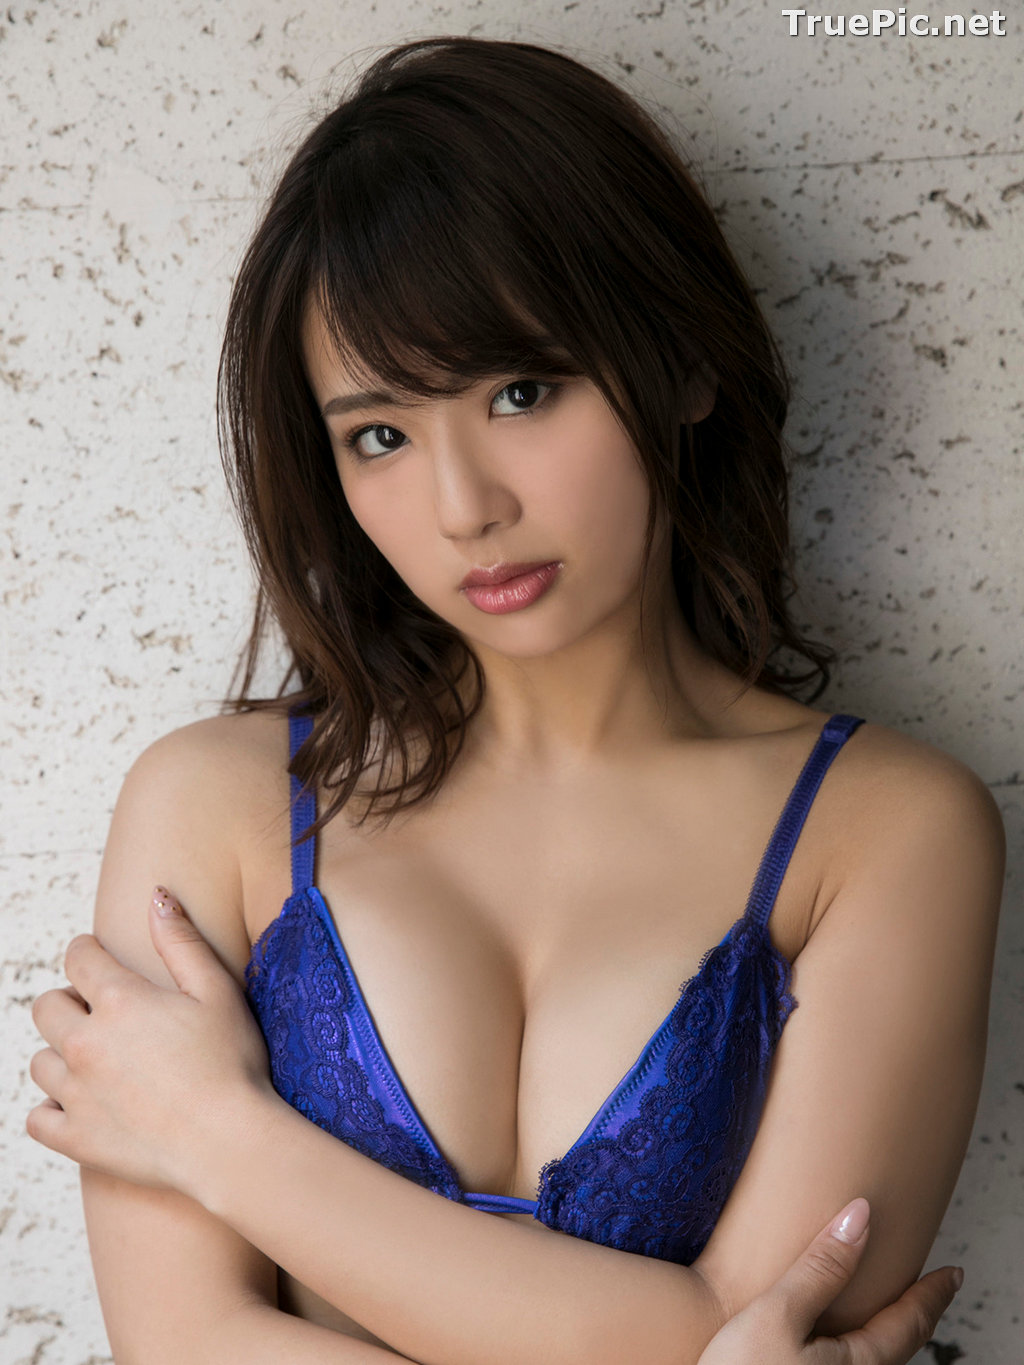 Image Japanese Actress And Model – Natsumi Hirajima (平嶋夏海) - Sexy Picture Collection 2021 - TruePic.net - Picture-1